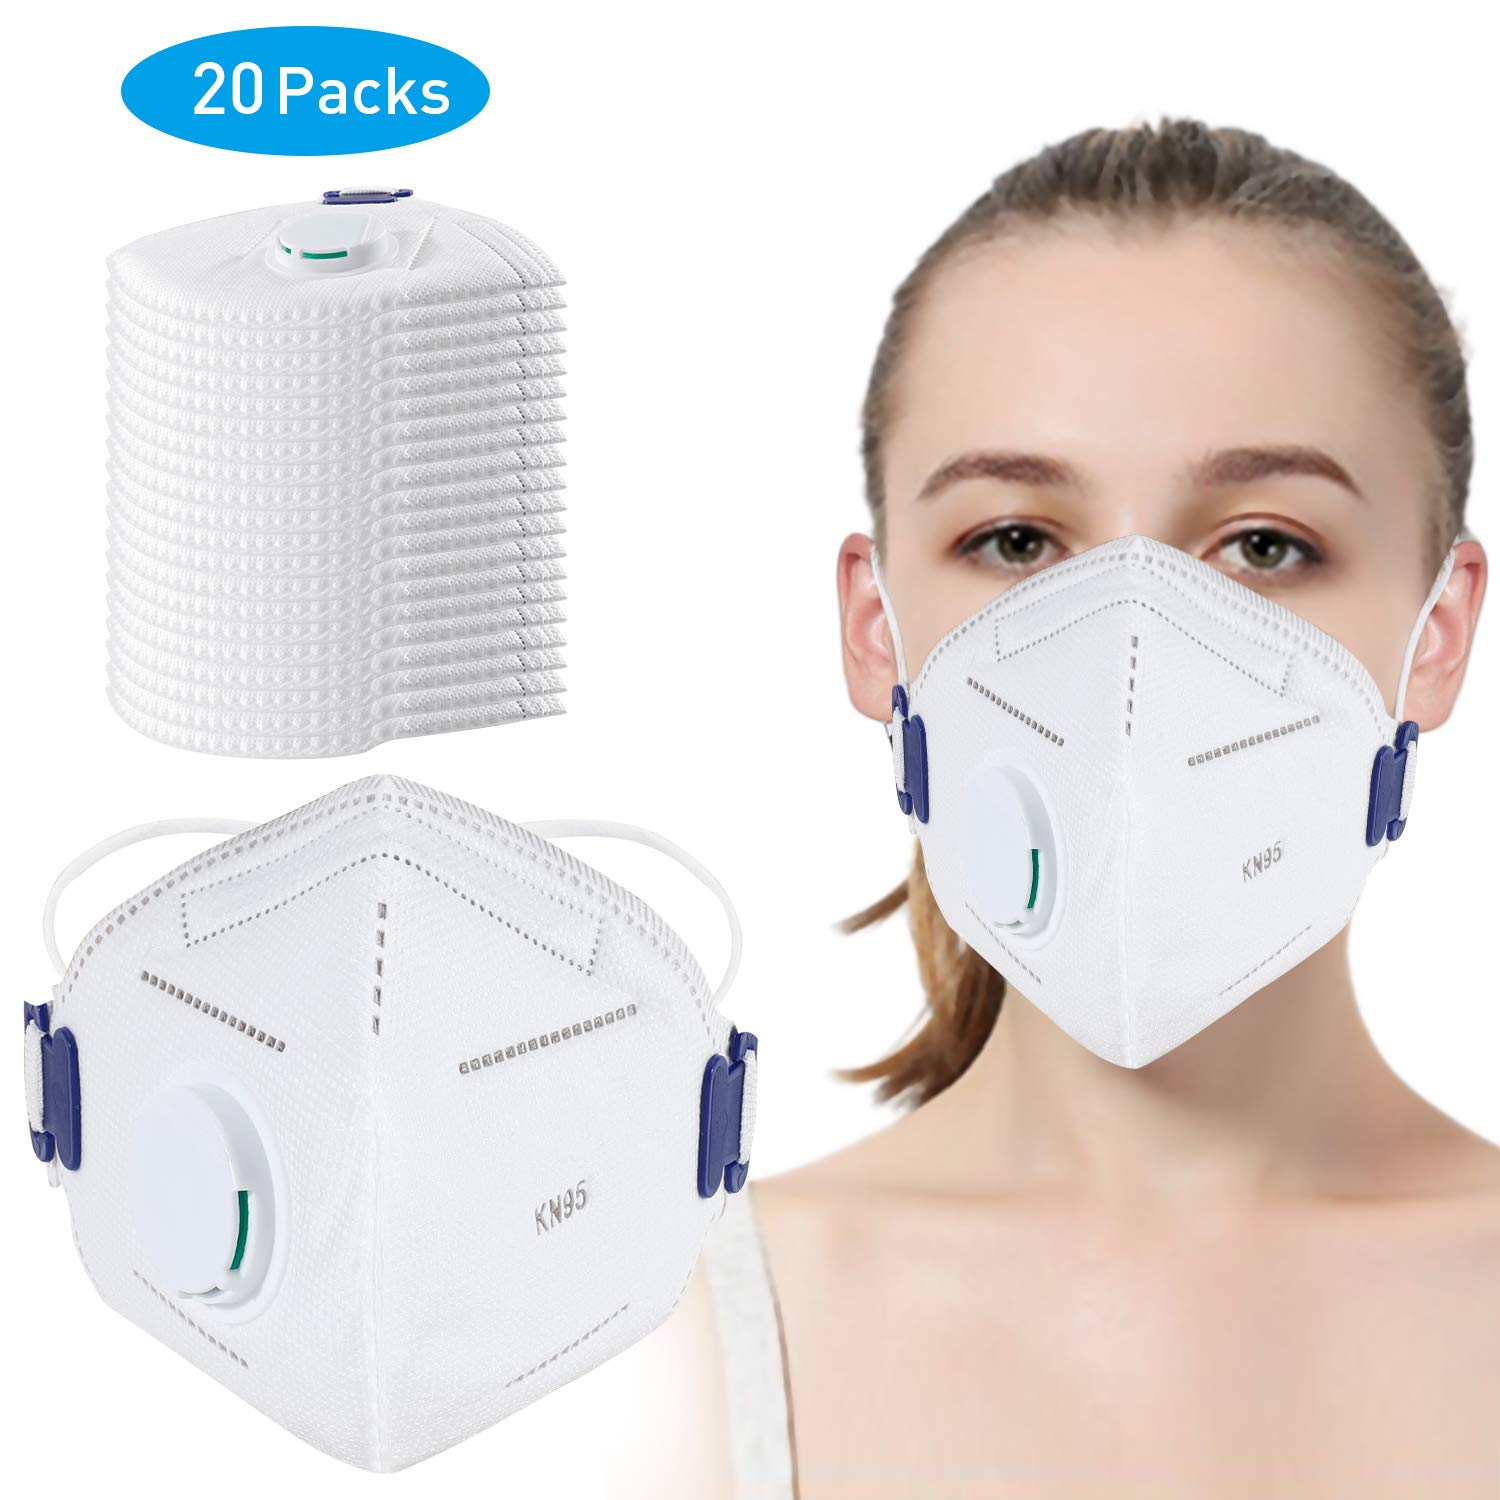 Disposable Dust Mask, N95 Particulate Respirator Masks with Breathing Valve (20 pack) - Anti-Dust,Air Pollution,Smoke,Safety Face Mask for for Construction,DIY,Home,Outdoor Use